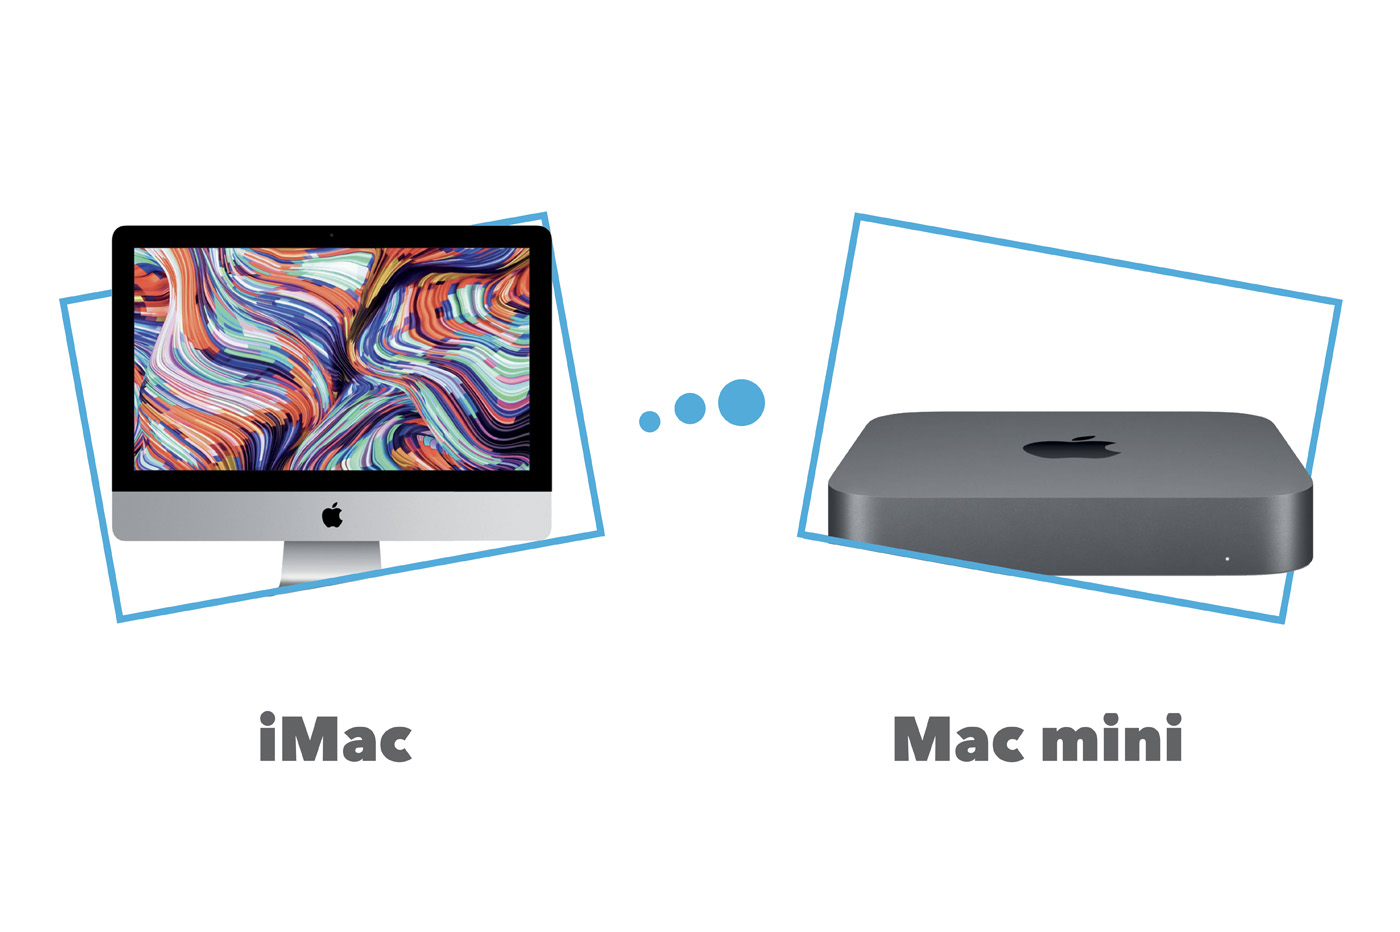 iMac vs Mac Mini comparatif